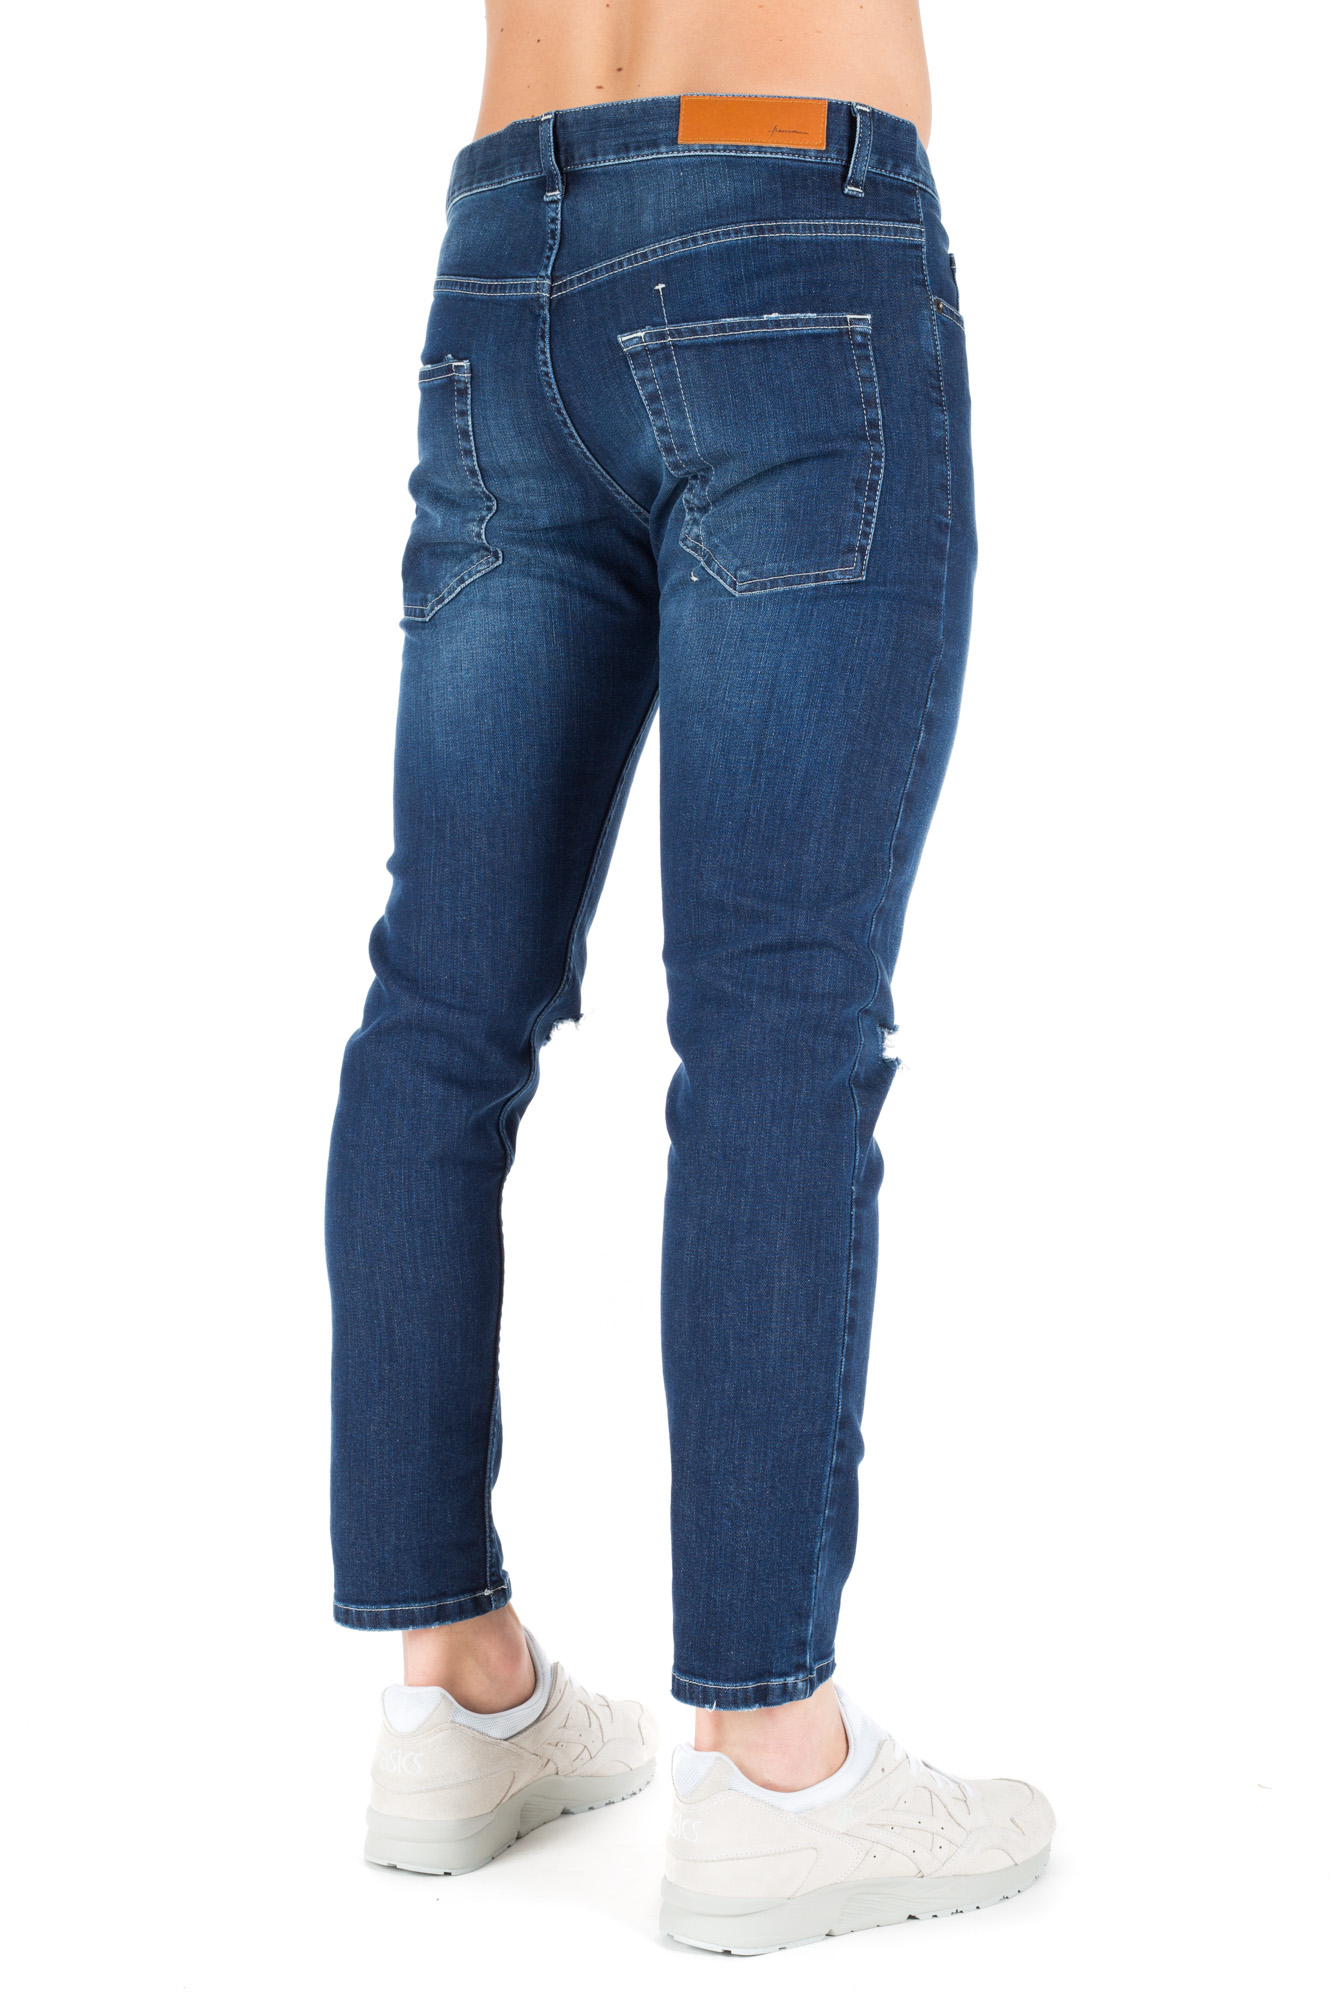 Paura - Stretch Jeans with Ripped Knees